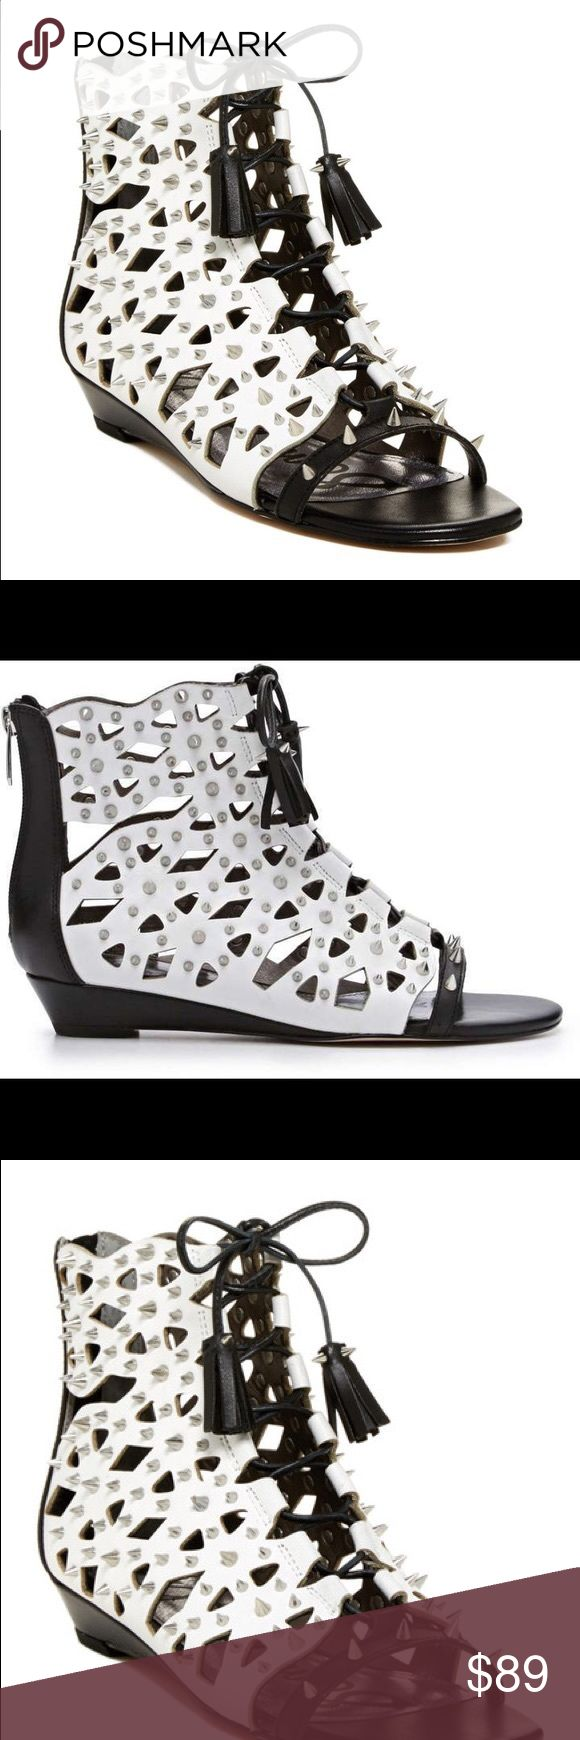 Sam Edelman Daphnie Gladiator Sandal Go all out in rocker chic with the Daphnie sandal from Sam Edelman®! Genuine leather upper with metal spike embellishments throughout. Rear zipper and lace closure. Open toe. Man-made lining and footbed. Man-made outsole. Actual pictures. Coming soon Sam Edelman Shoes Sandals